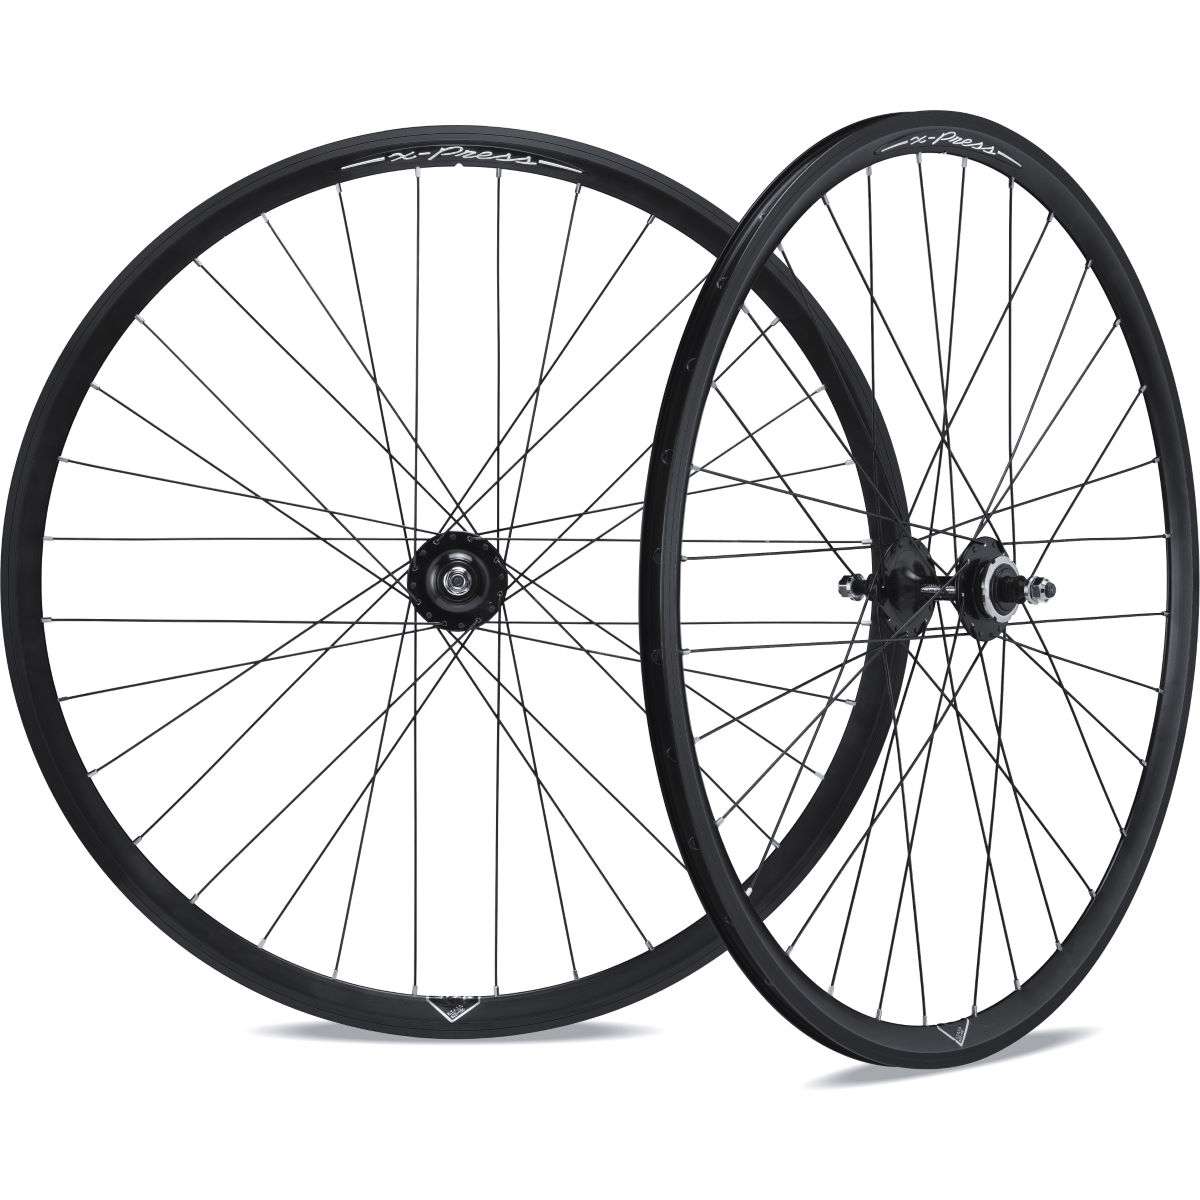 Roues de piste/route Miche X-Press - 700c - Track Only Noir Roues performance